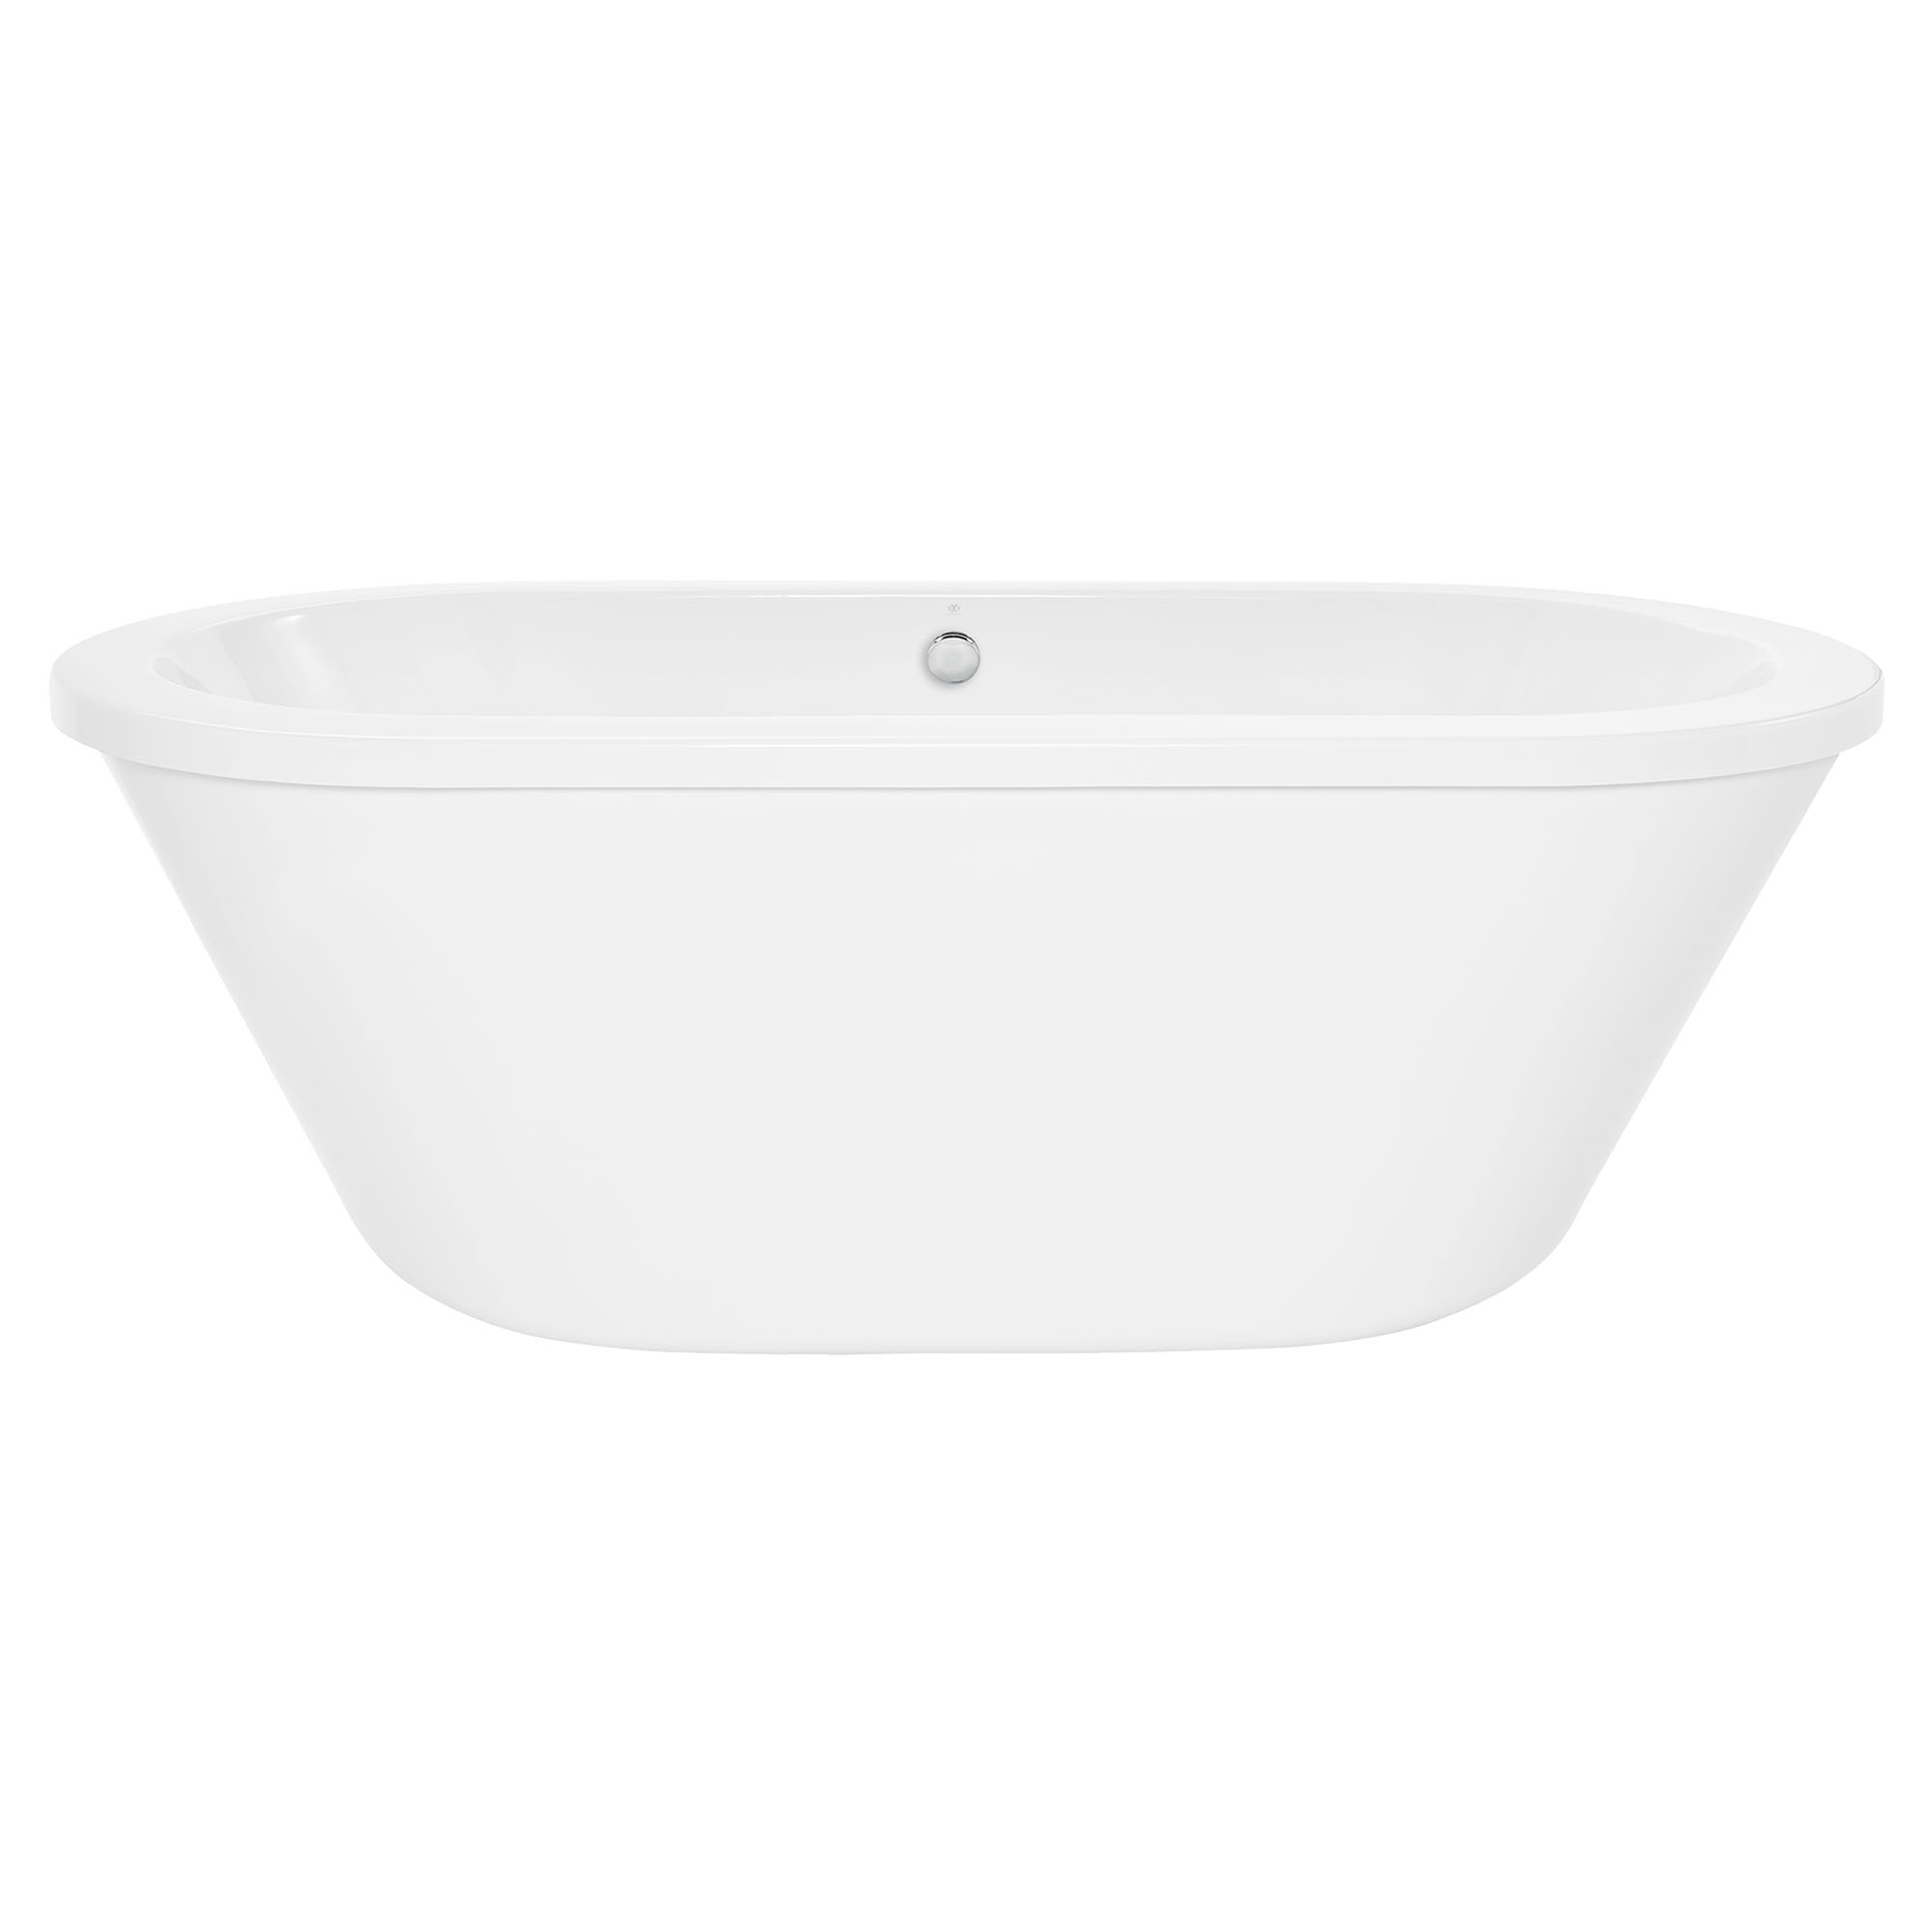 Lowell Freestanding Soaking Tub